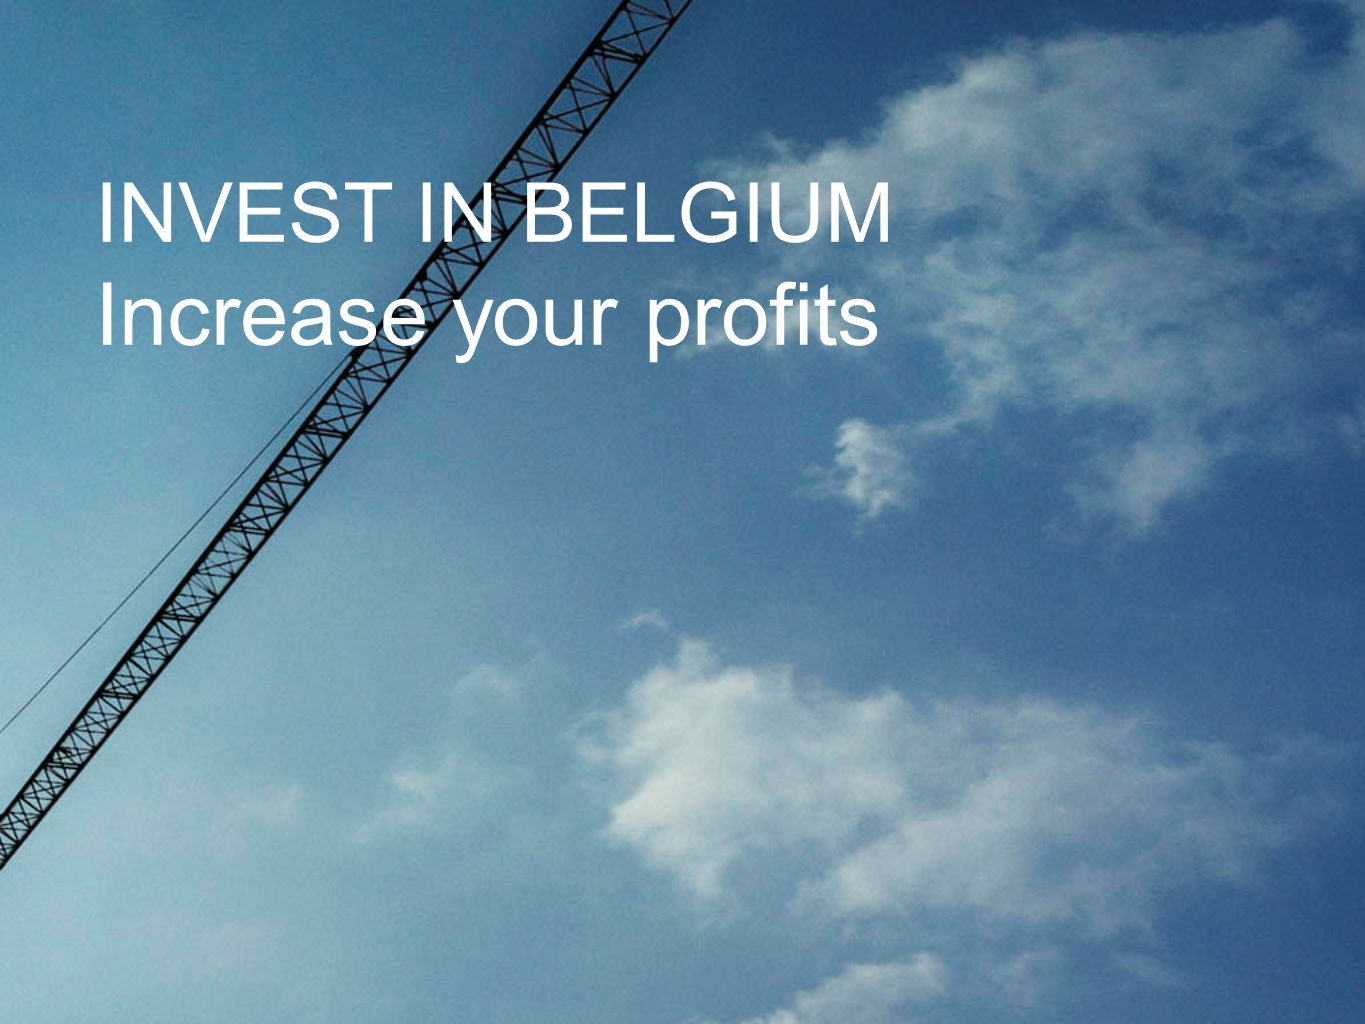 INVEST IN BELGIUM Increase your profits